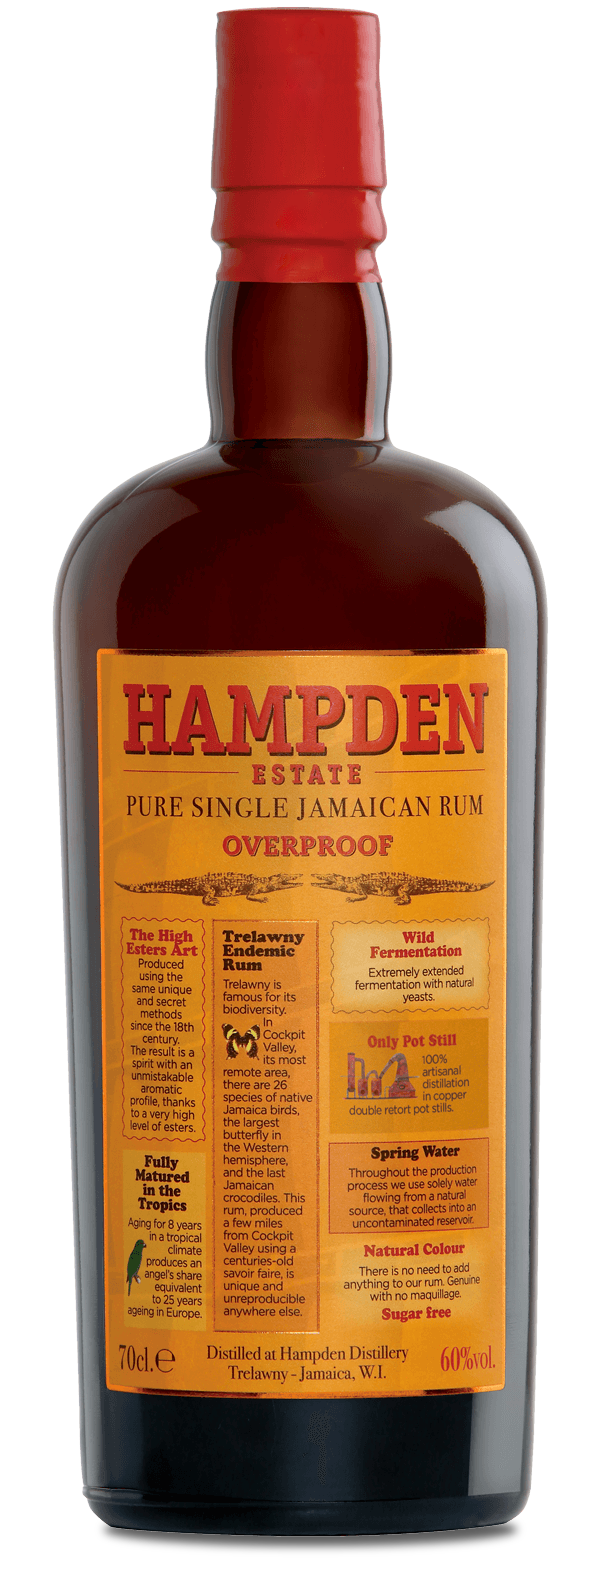 Hampden Estate 120pf Rum - Available at Wooden Cork